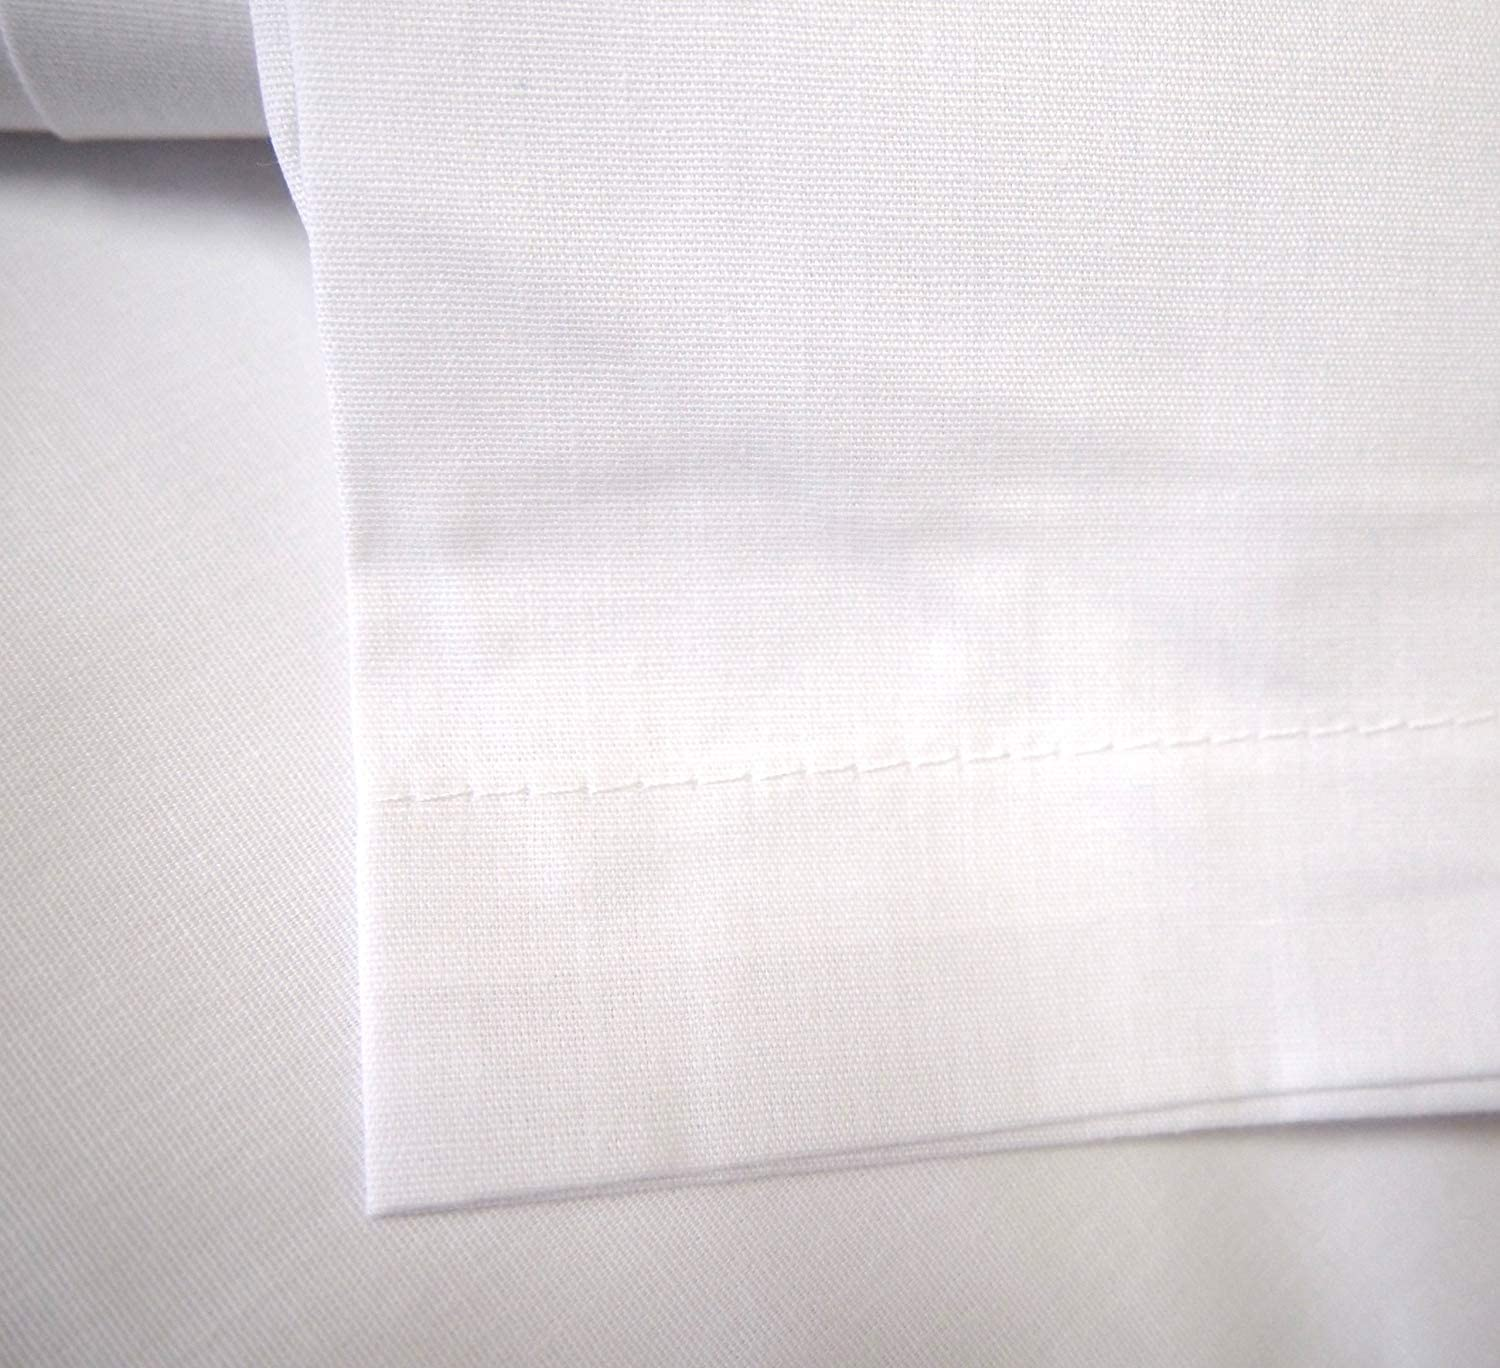 Linteum Textile 12-Pack, 66x104 in, White 180 Thread Count Twin Flat Sheets